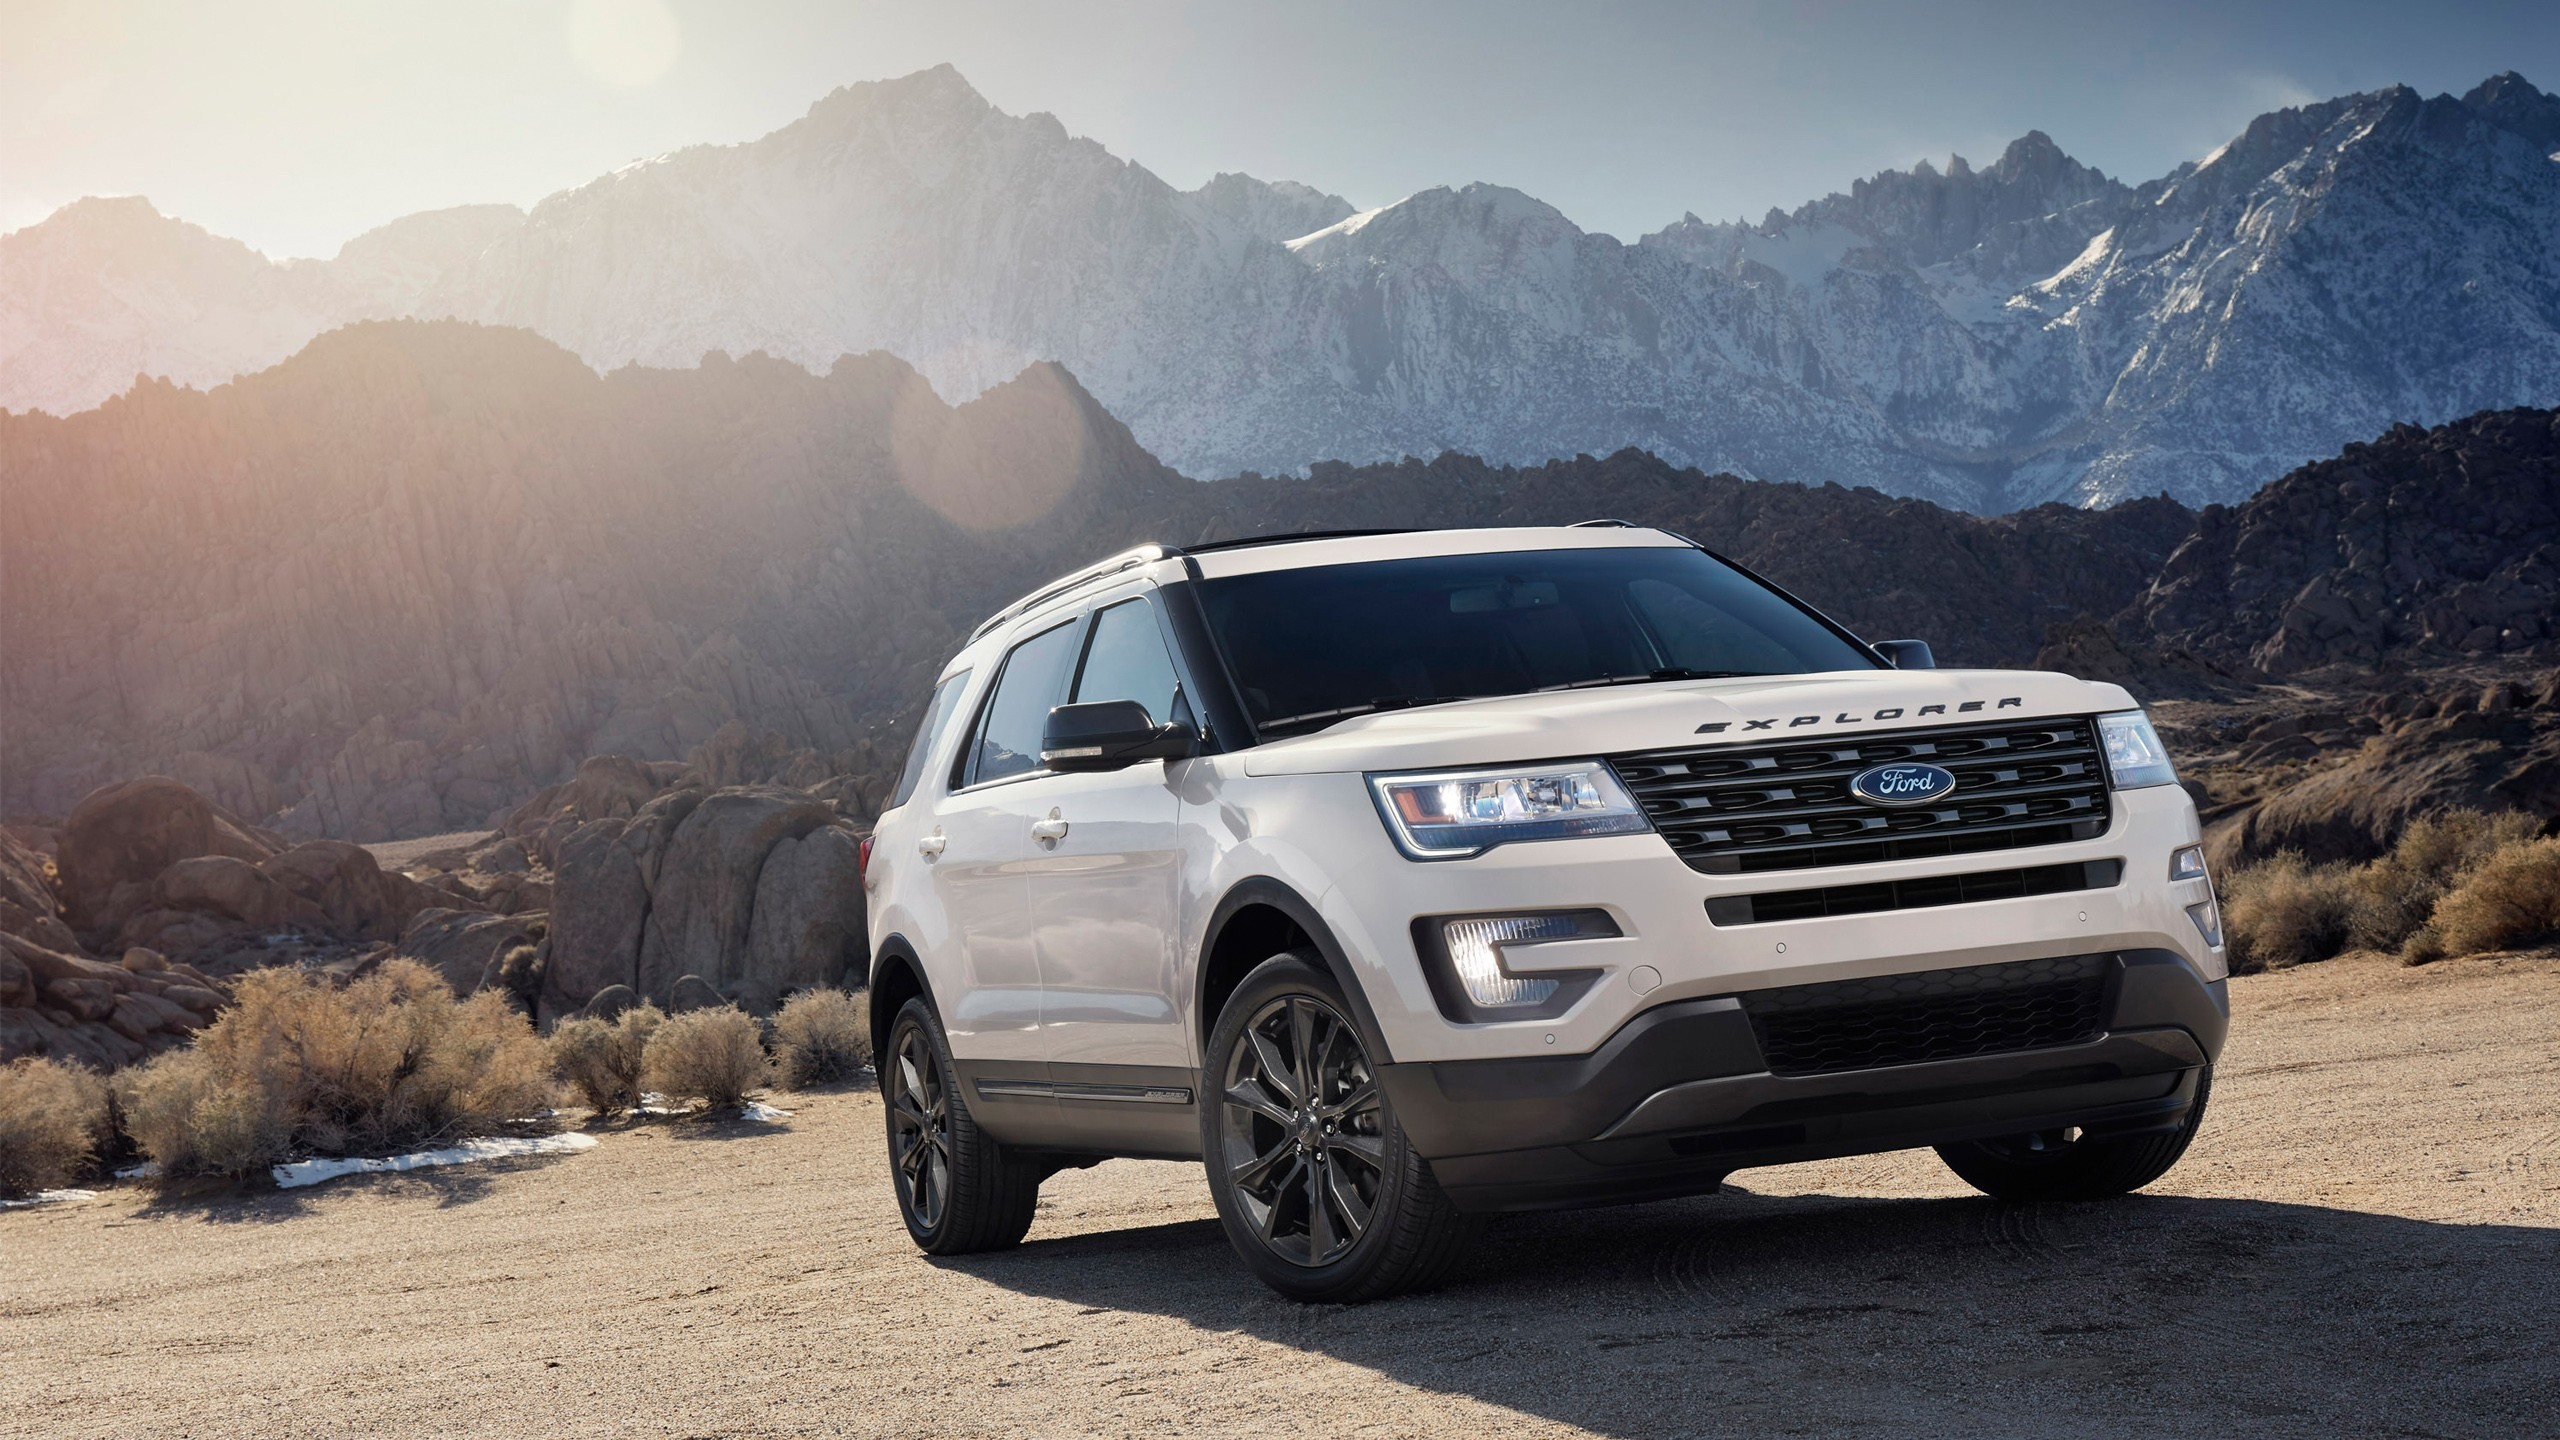 2017 Ford Explorer Xlt Appearance Package Wallpaper Hd